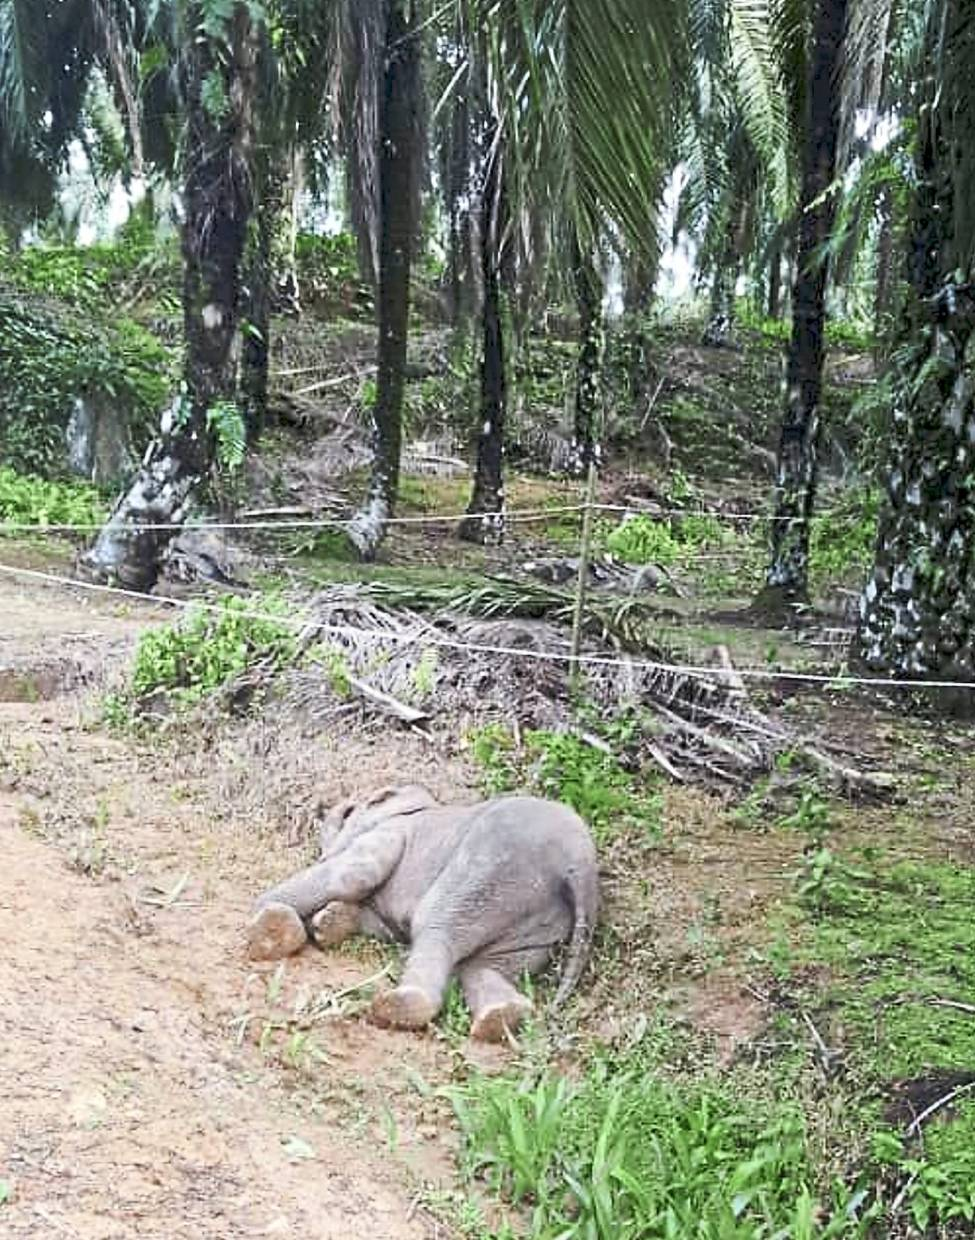 The Bornean pygmy elephant lying dead at an oil palm plantation in Ladang Malangking in Sukau, Sabah.